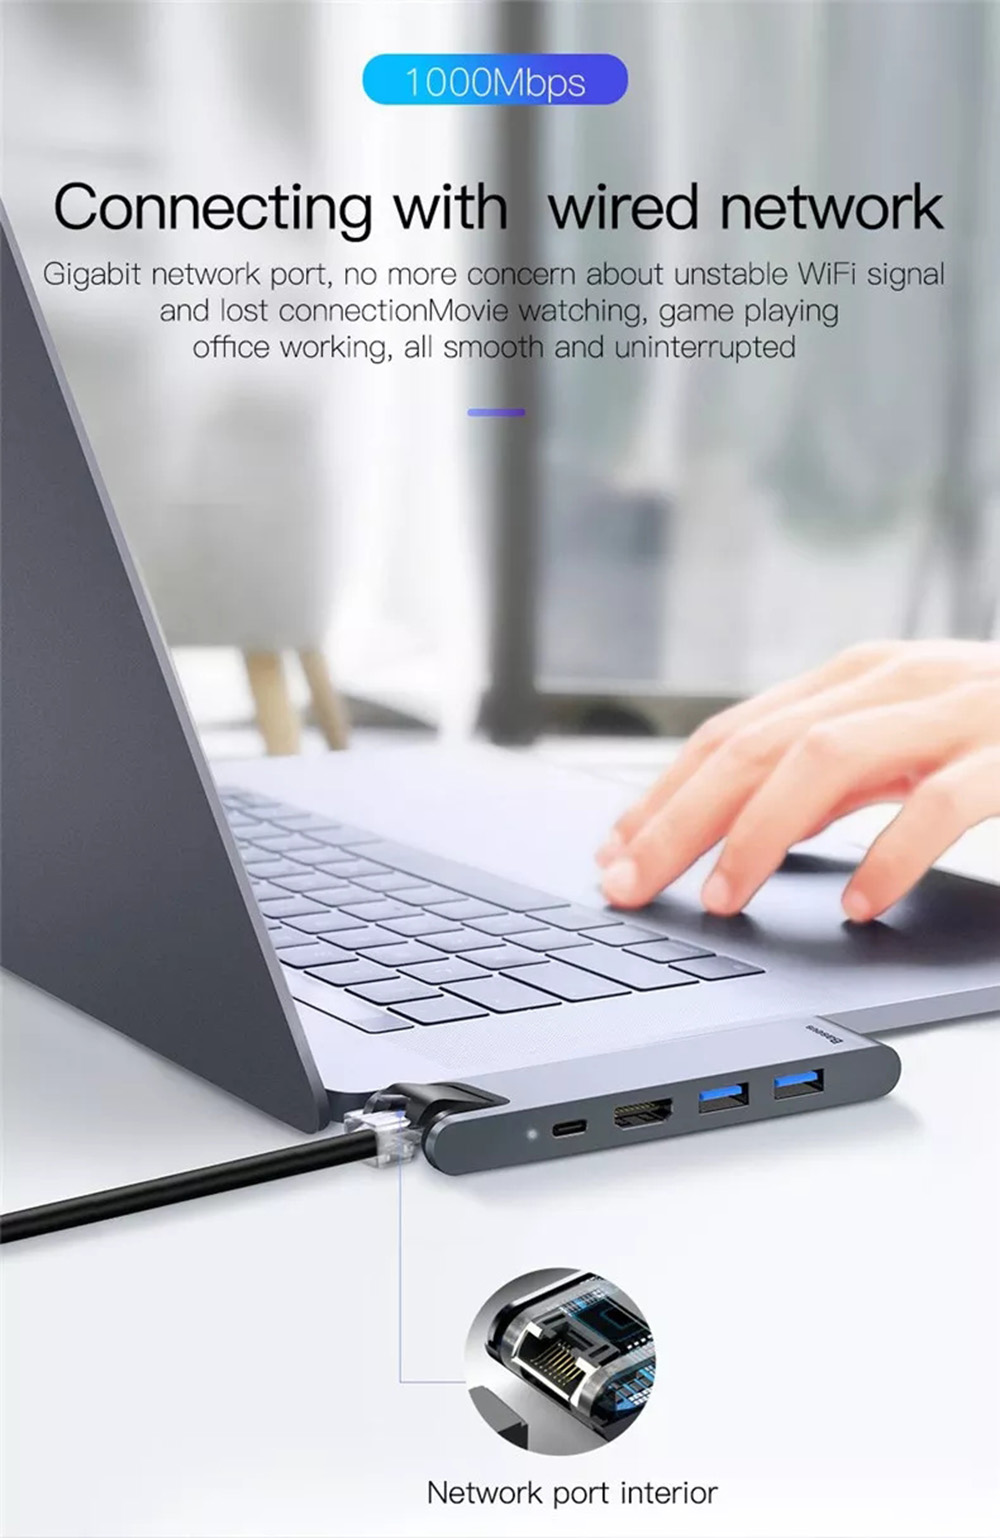 Baseus 7 in 1 Dual Type-C USB C Hub Adapter with 2 USB 3.0 Ports 4K HD Display Interface RJ45 Gigabit Port PD Charging Port Memory Card Readers for Dual Type-C Devices MacBook- Dark Gray